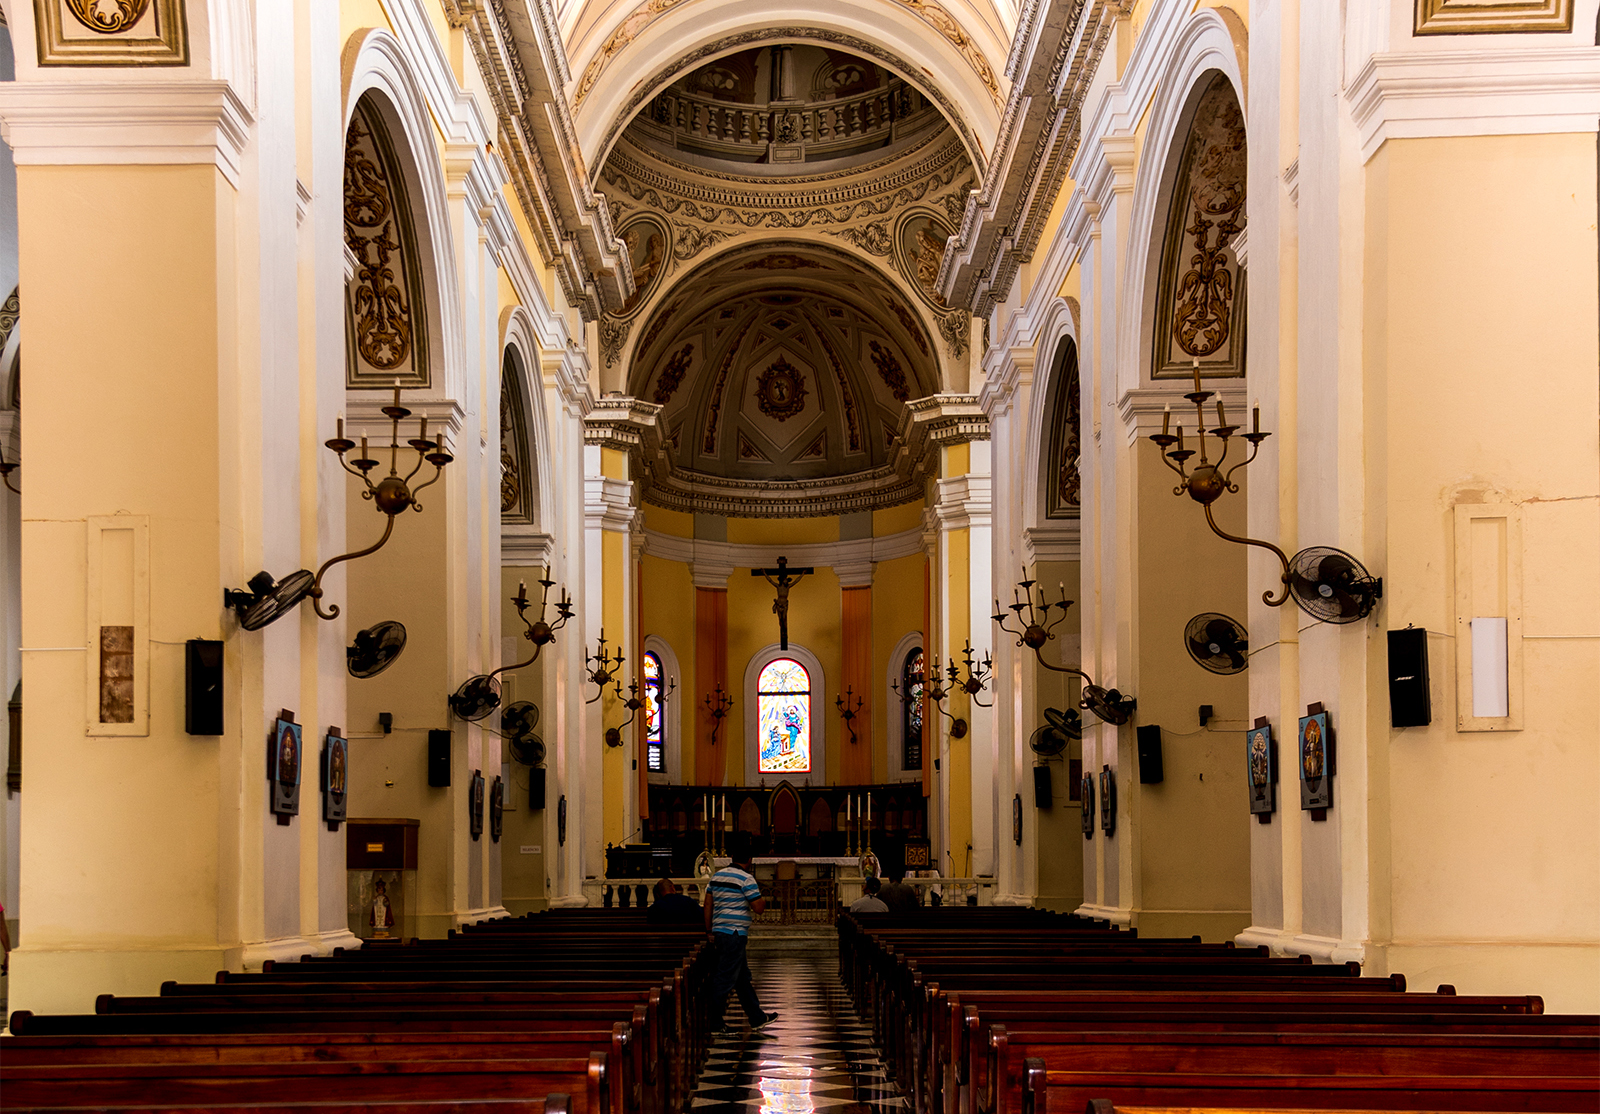 the awe-inspiring interior of the cathedral in Old San Juan